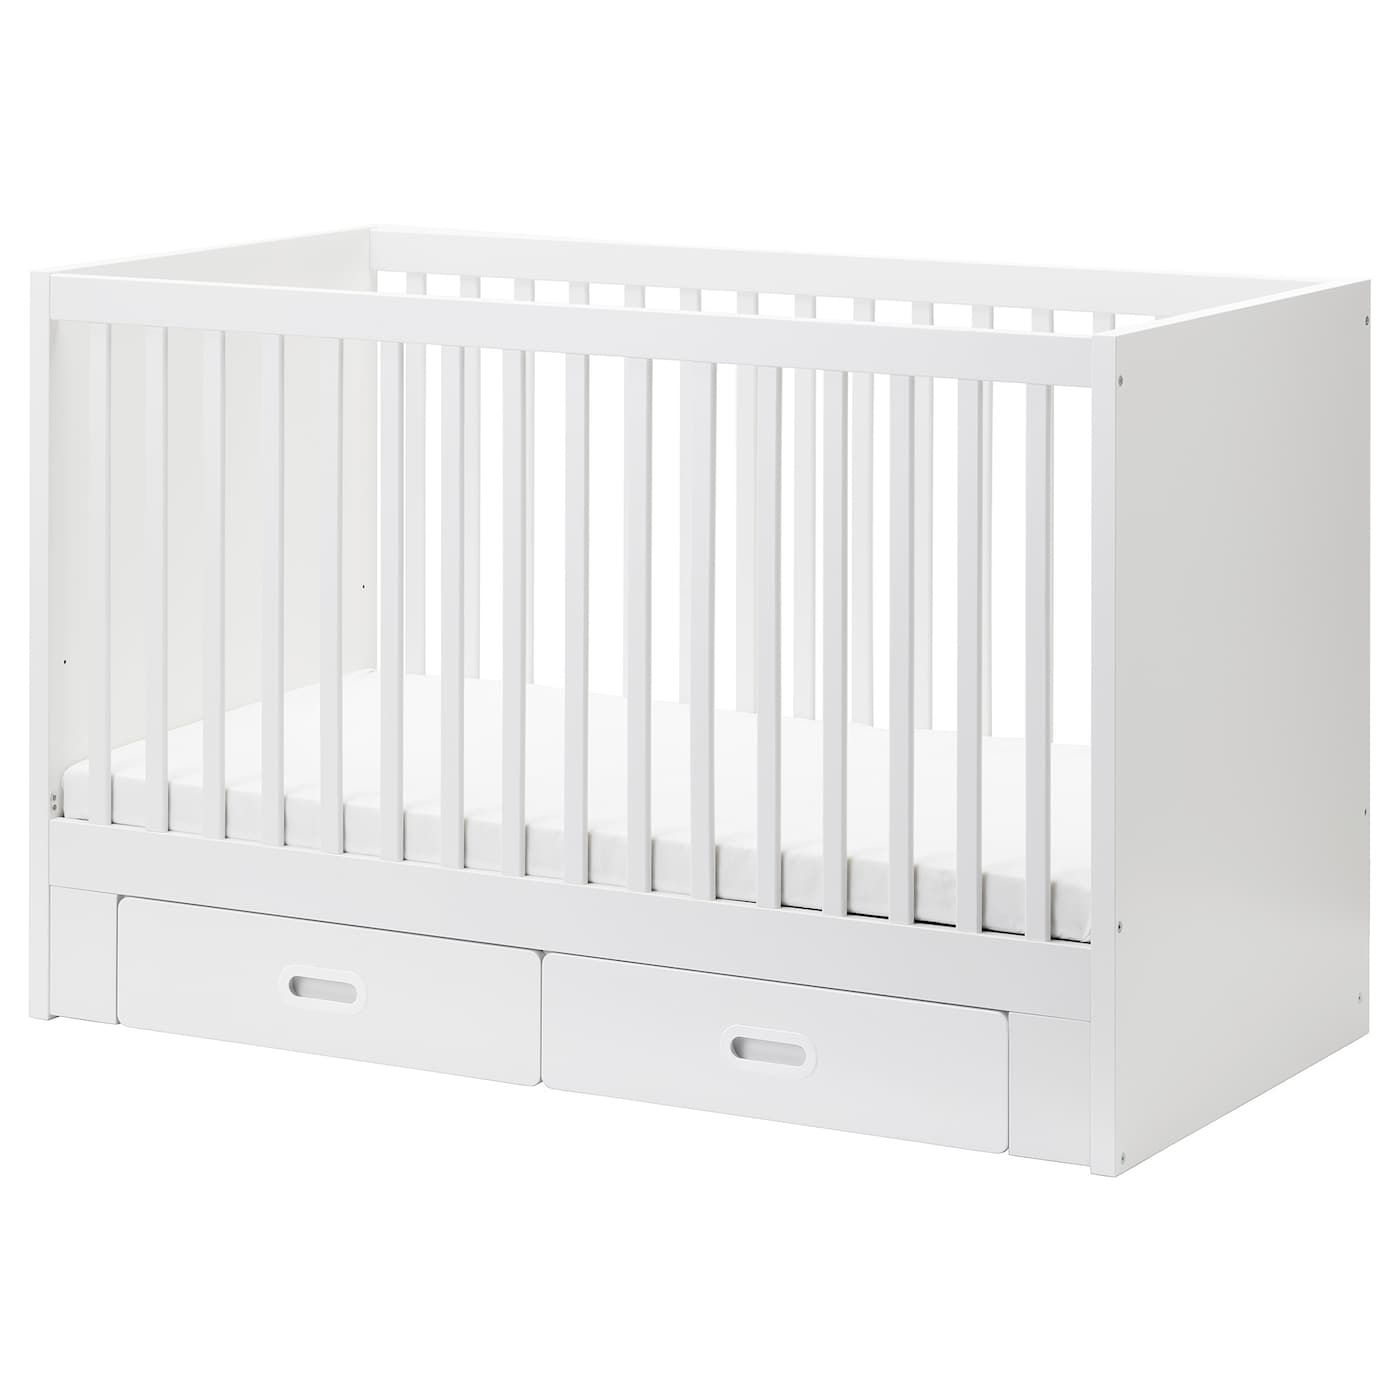 GroB IKEA FRITIDS/STUVA Cot With Drawers The Cot Base Can Be Placed At Two  Different